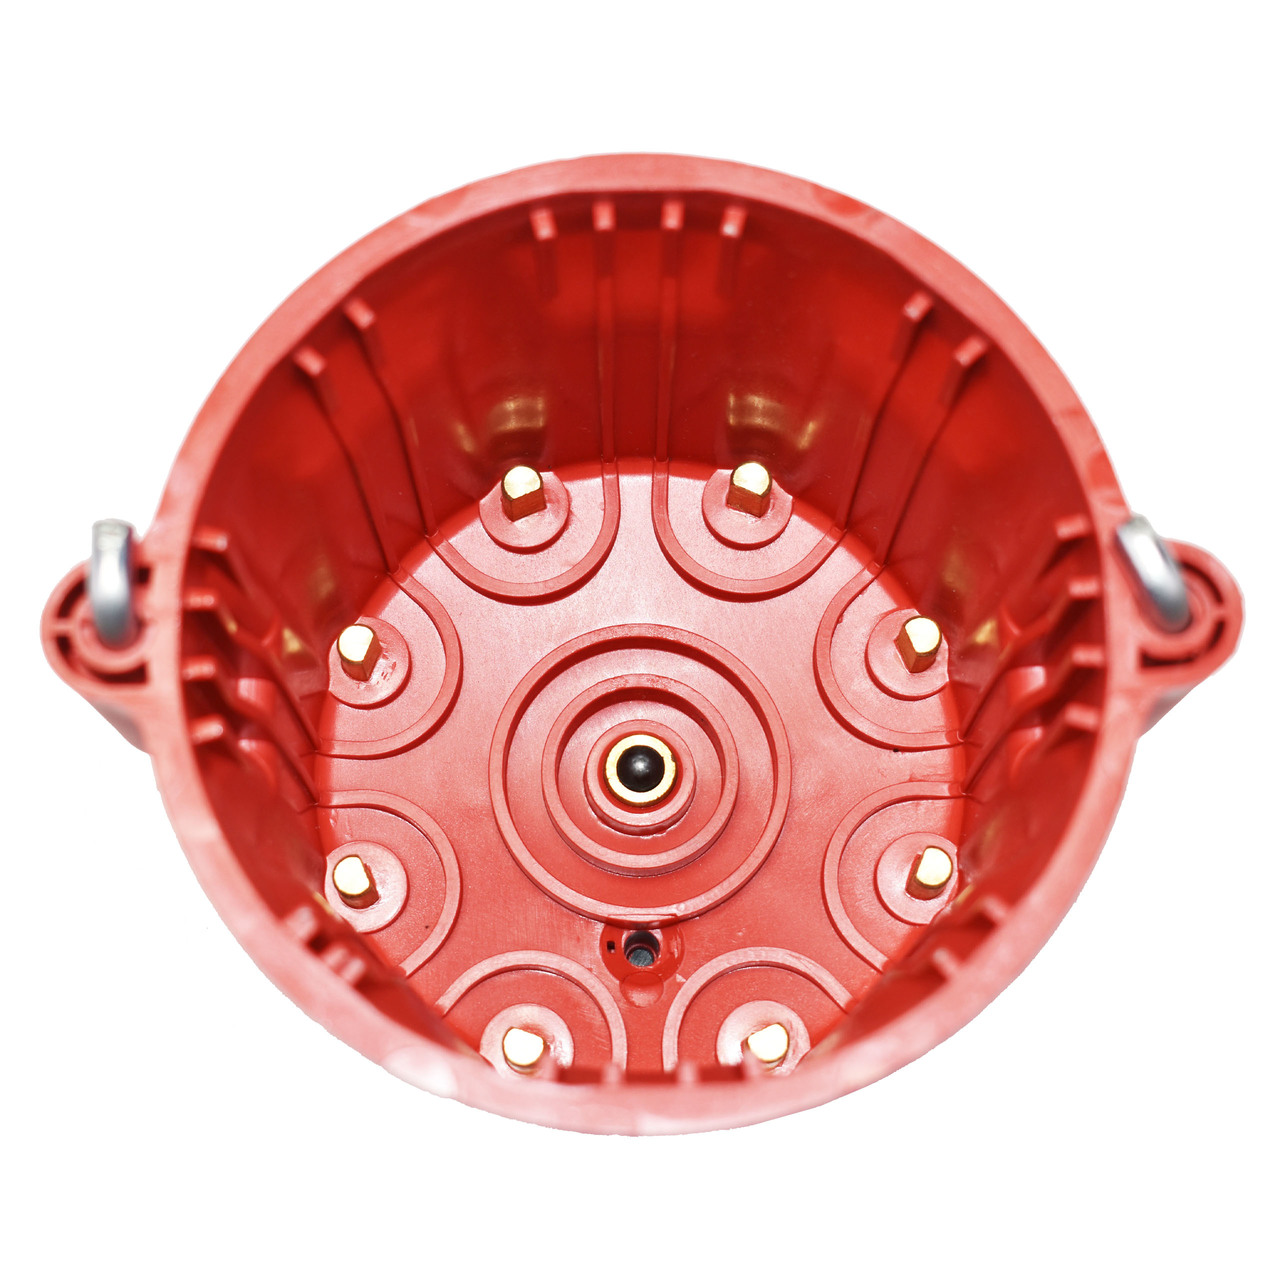 A-Team Performance  8-Cylinder Male Pro Series Distributor Cap & Rotor Kit (Red)